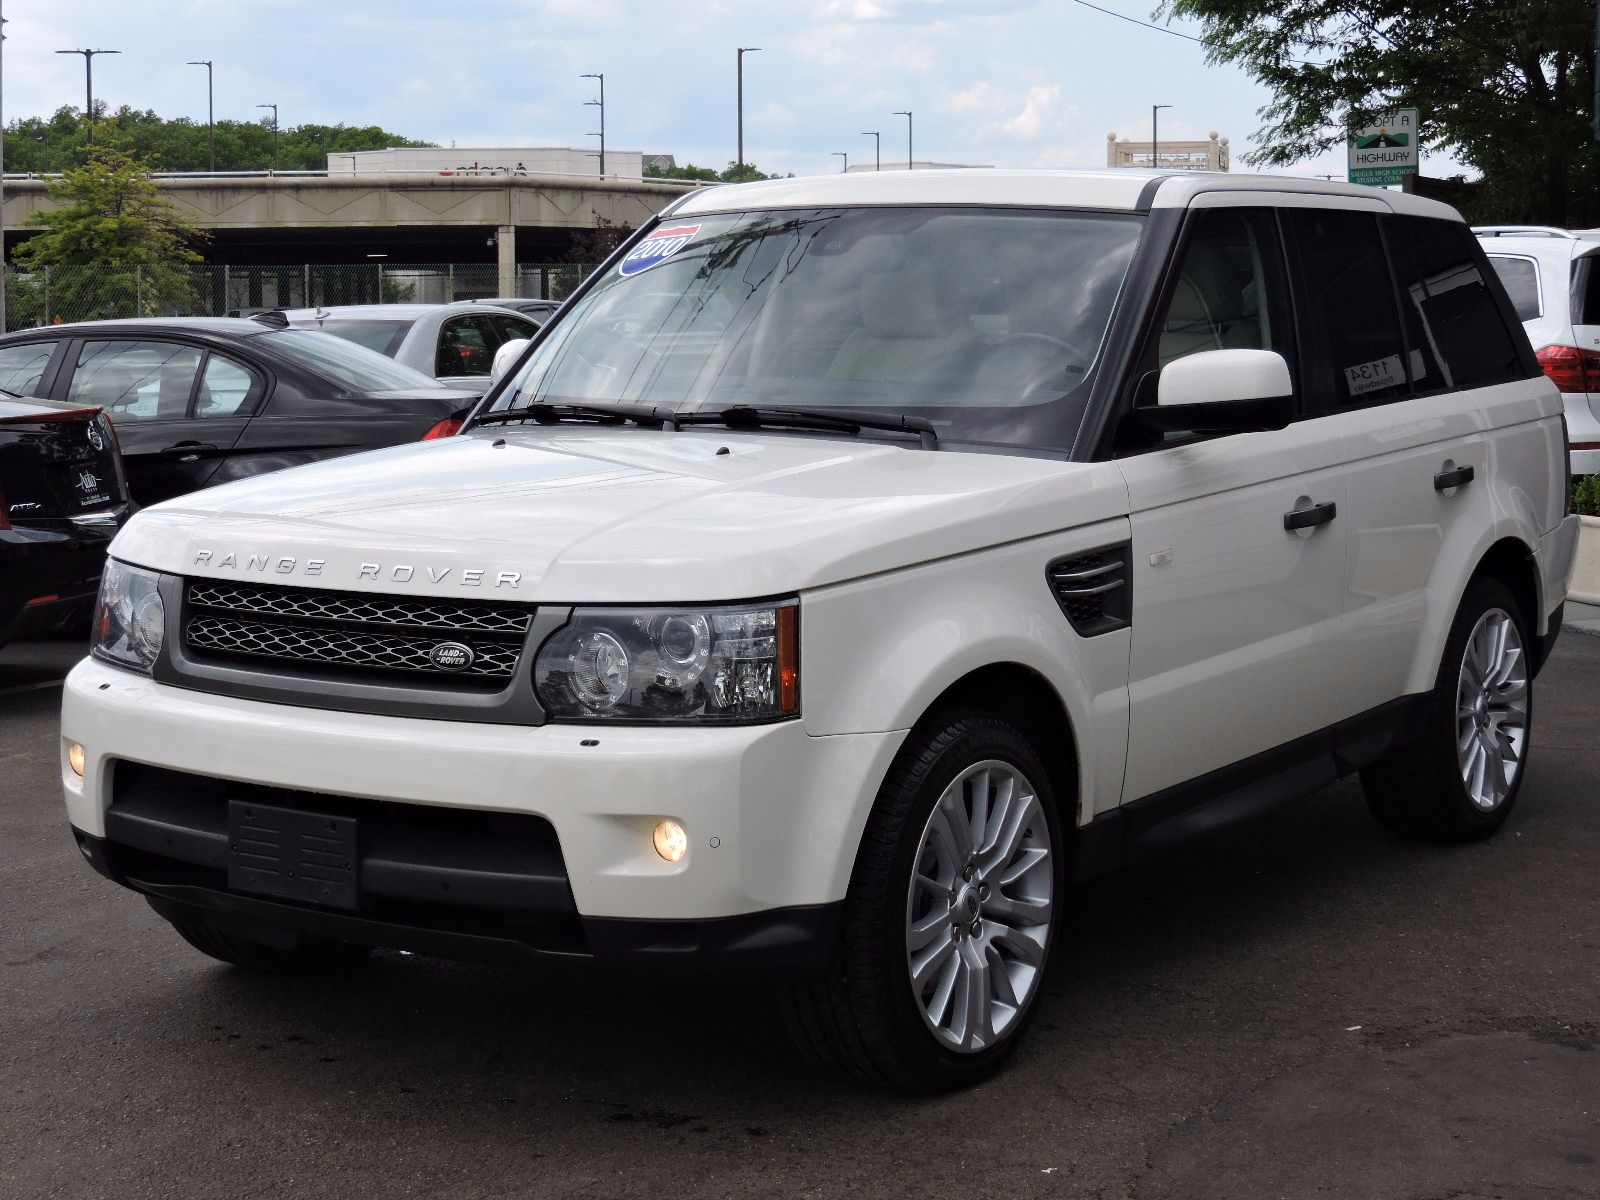 Used 2010 Land Rover Range Rover Sport HSE LUX at Saugus Auto Mall